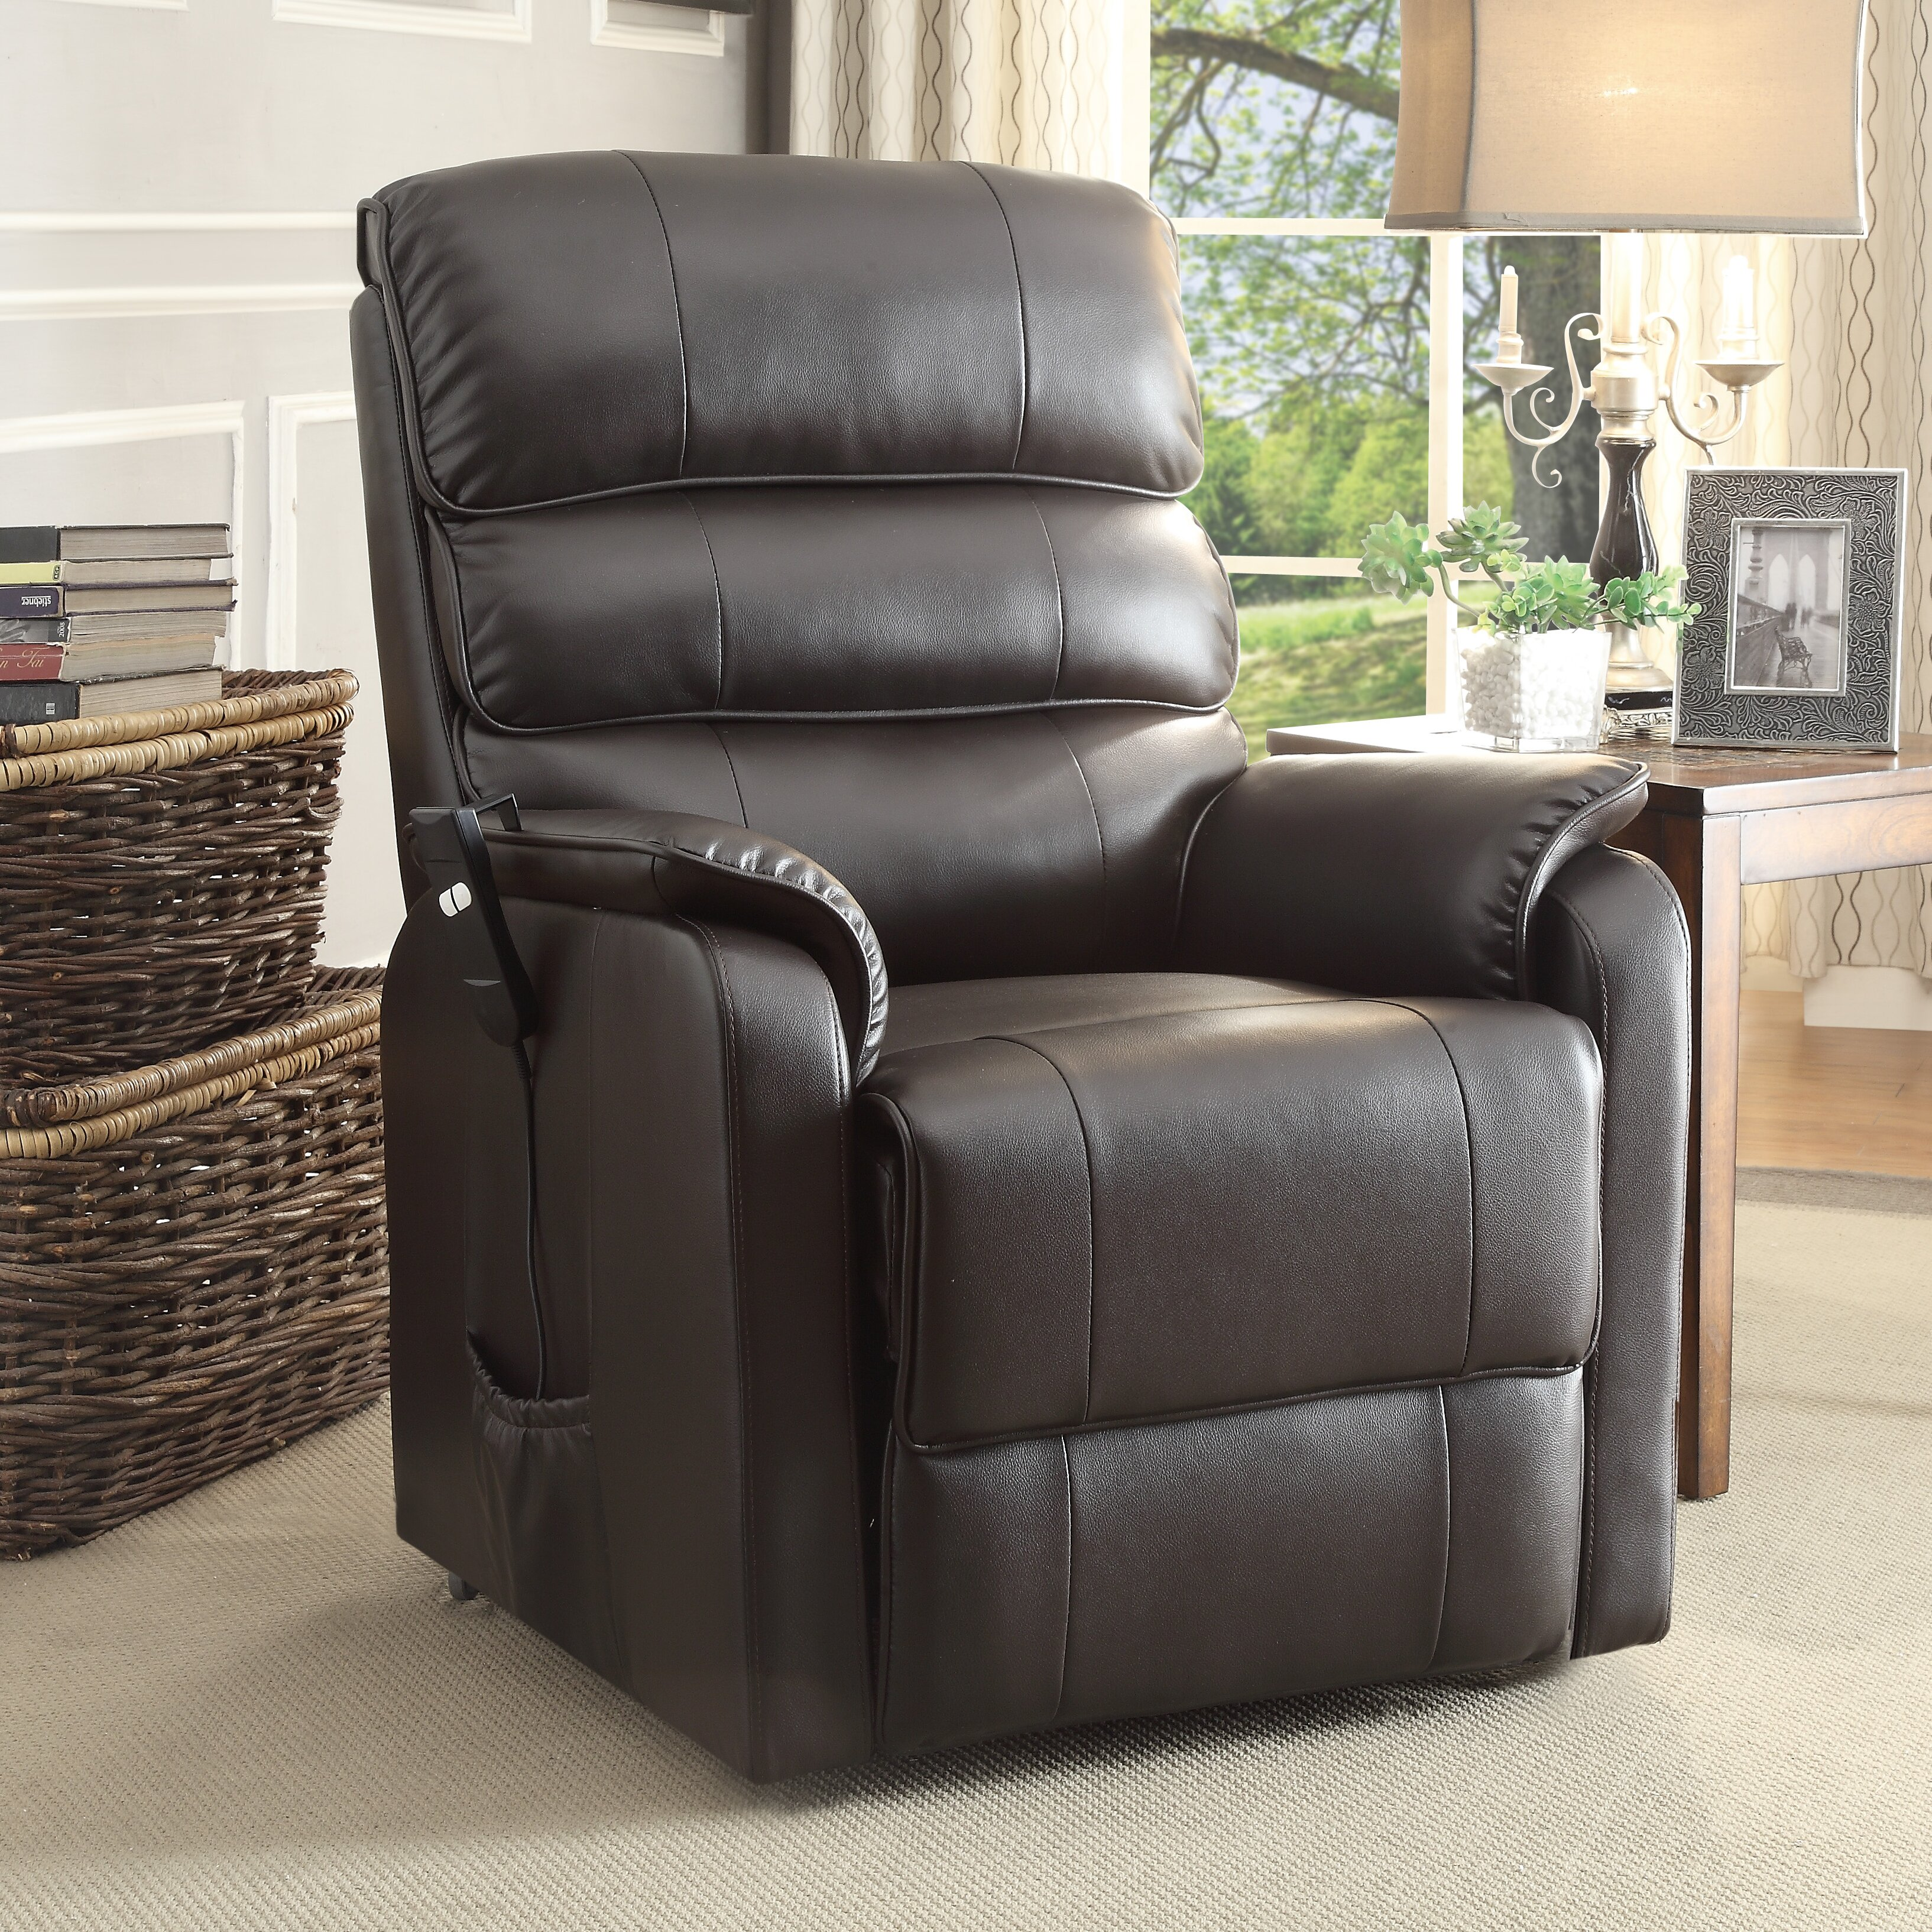 Woodhaven Living Room Furniture Woodhaven Living Room Furniture Woodhaven Hill Callie Sleeper